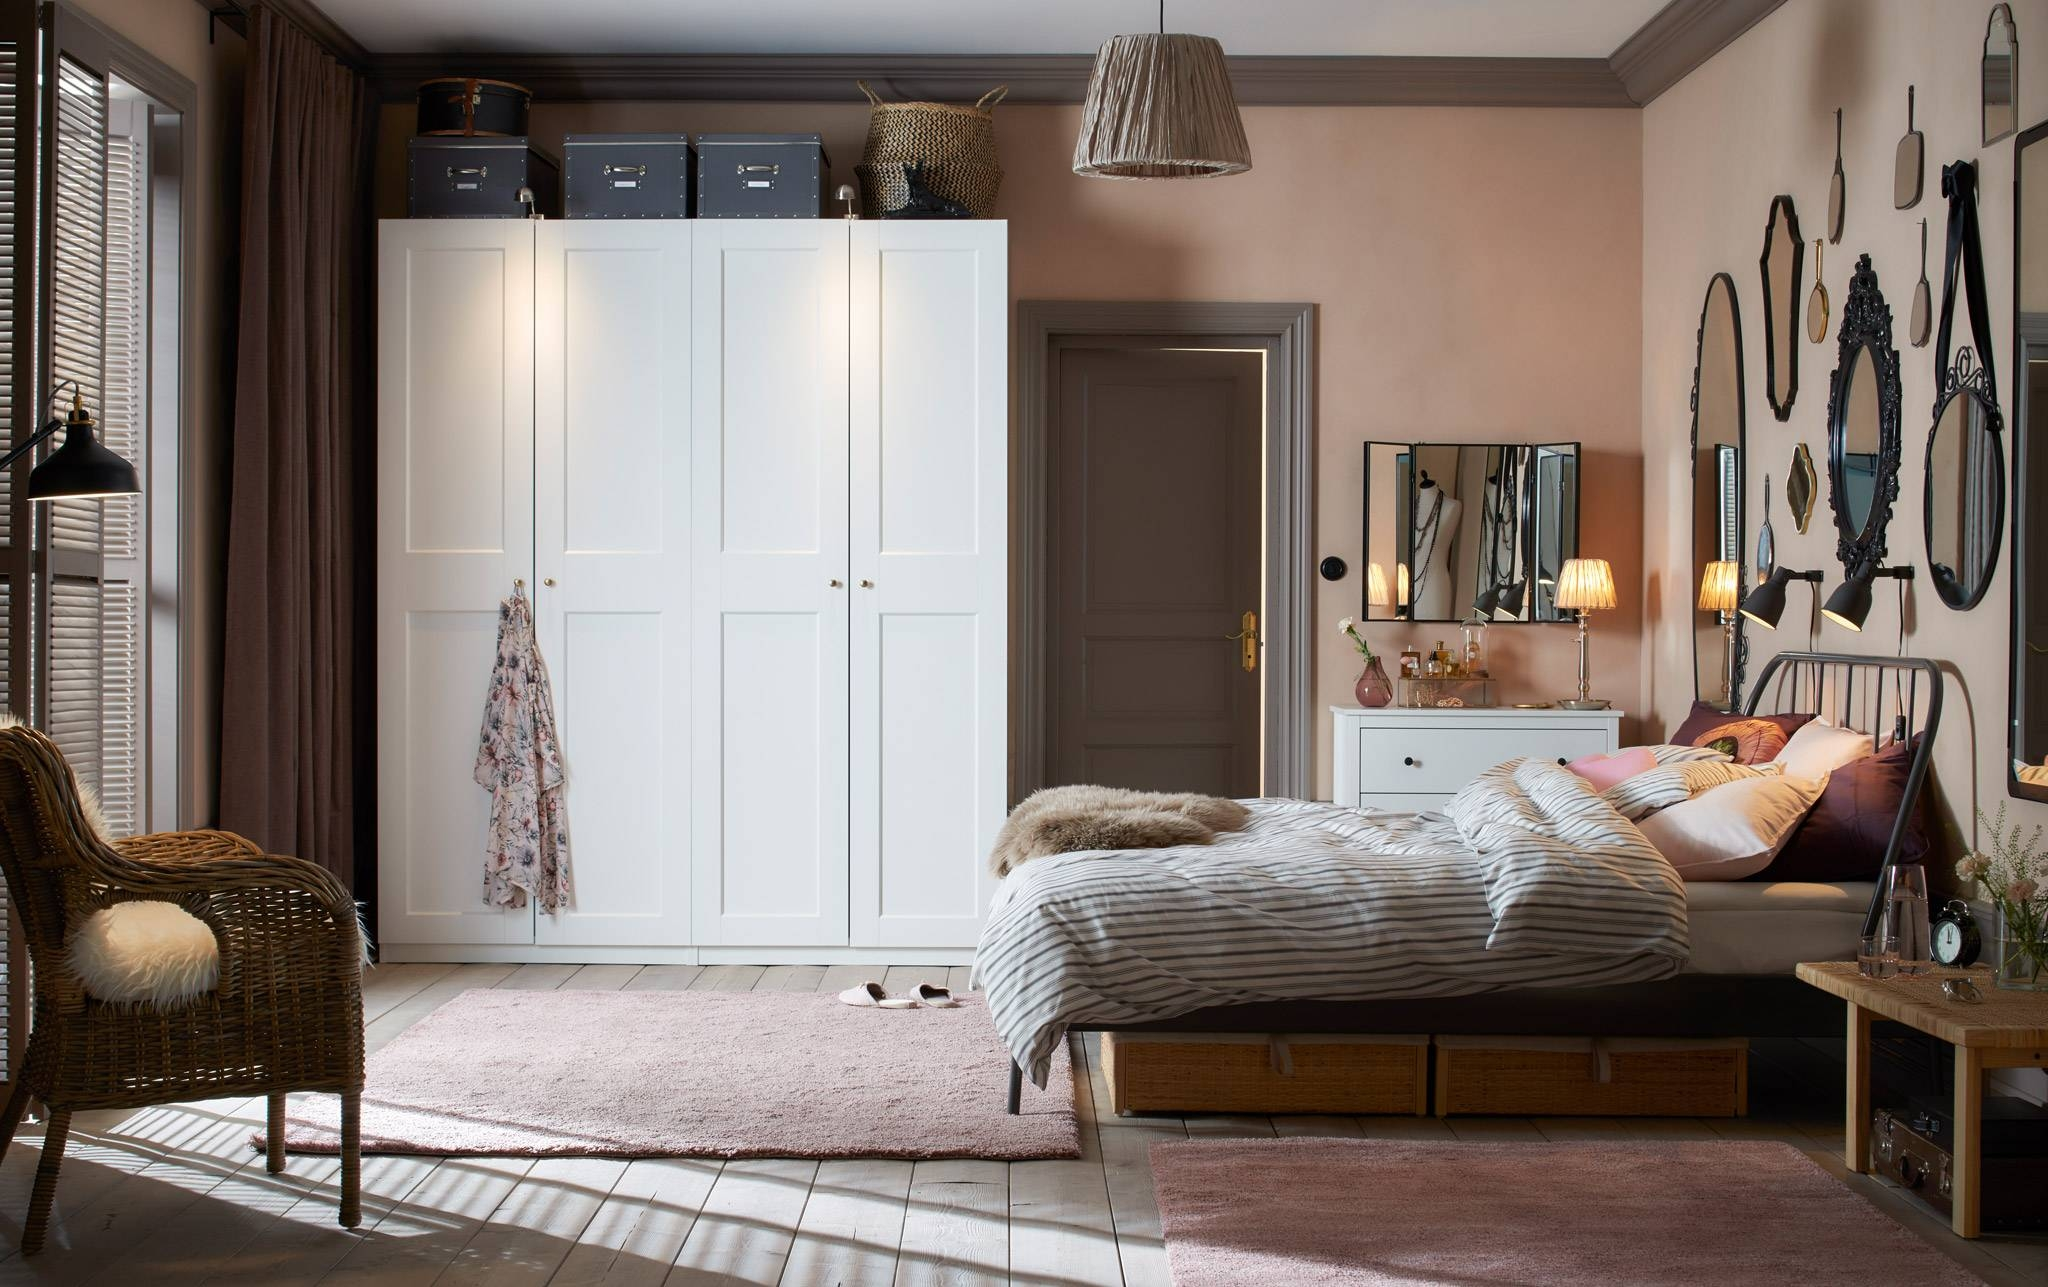 Bedroom Furniture & Ideas | Ikea for Bedroom Wardrobes (Image 2 of 15)